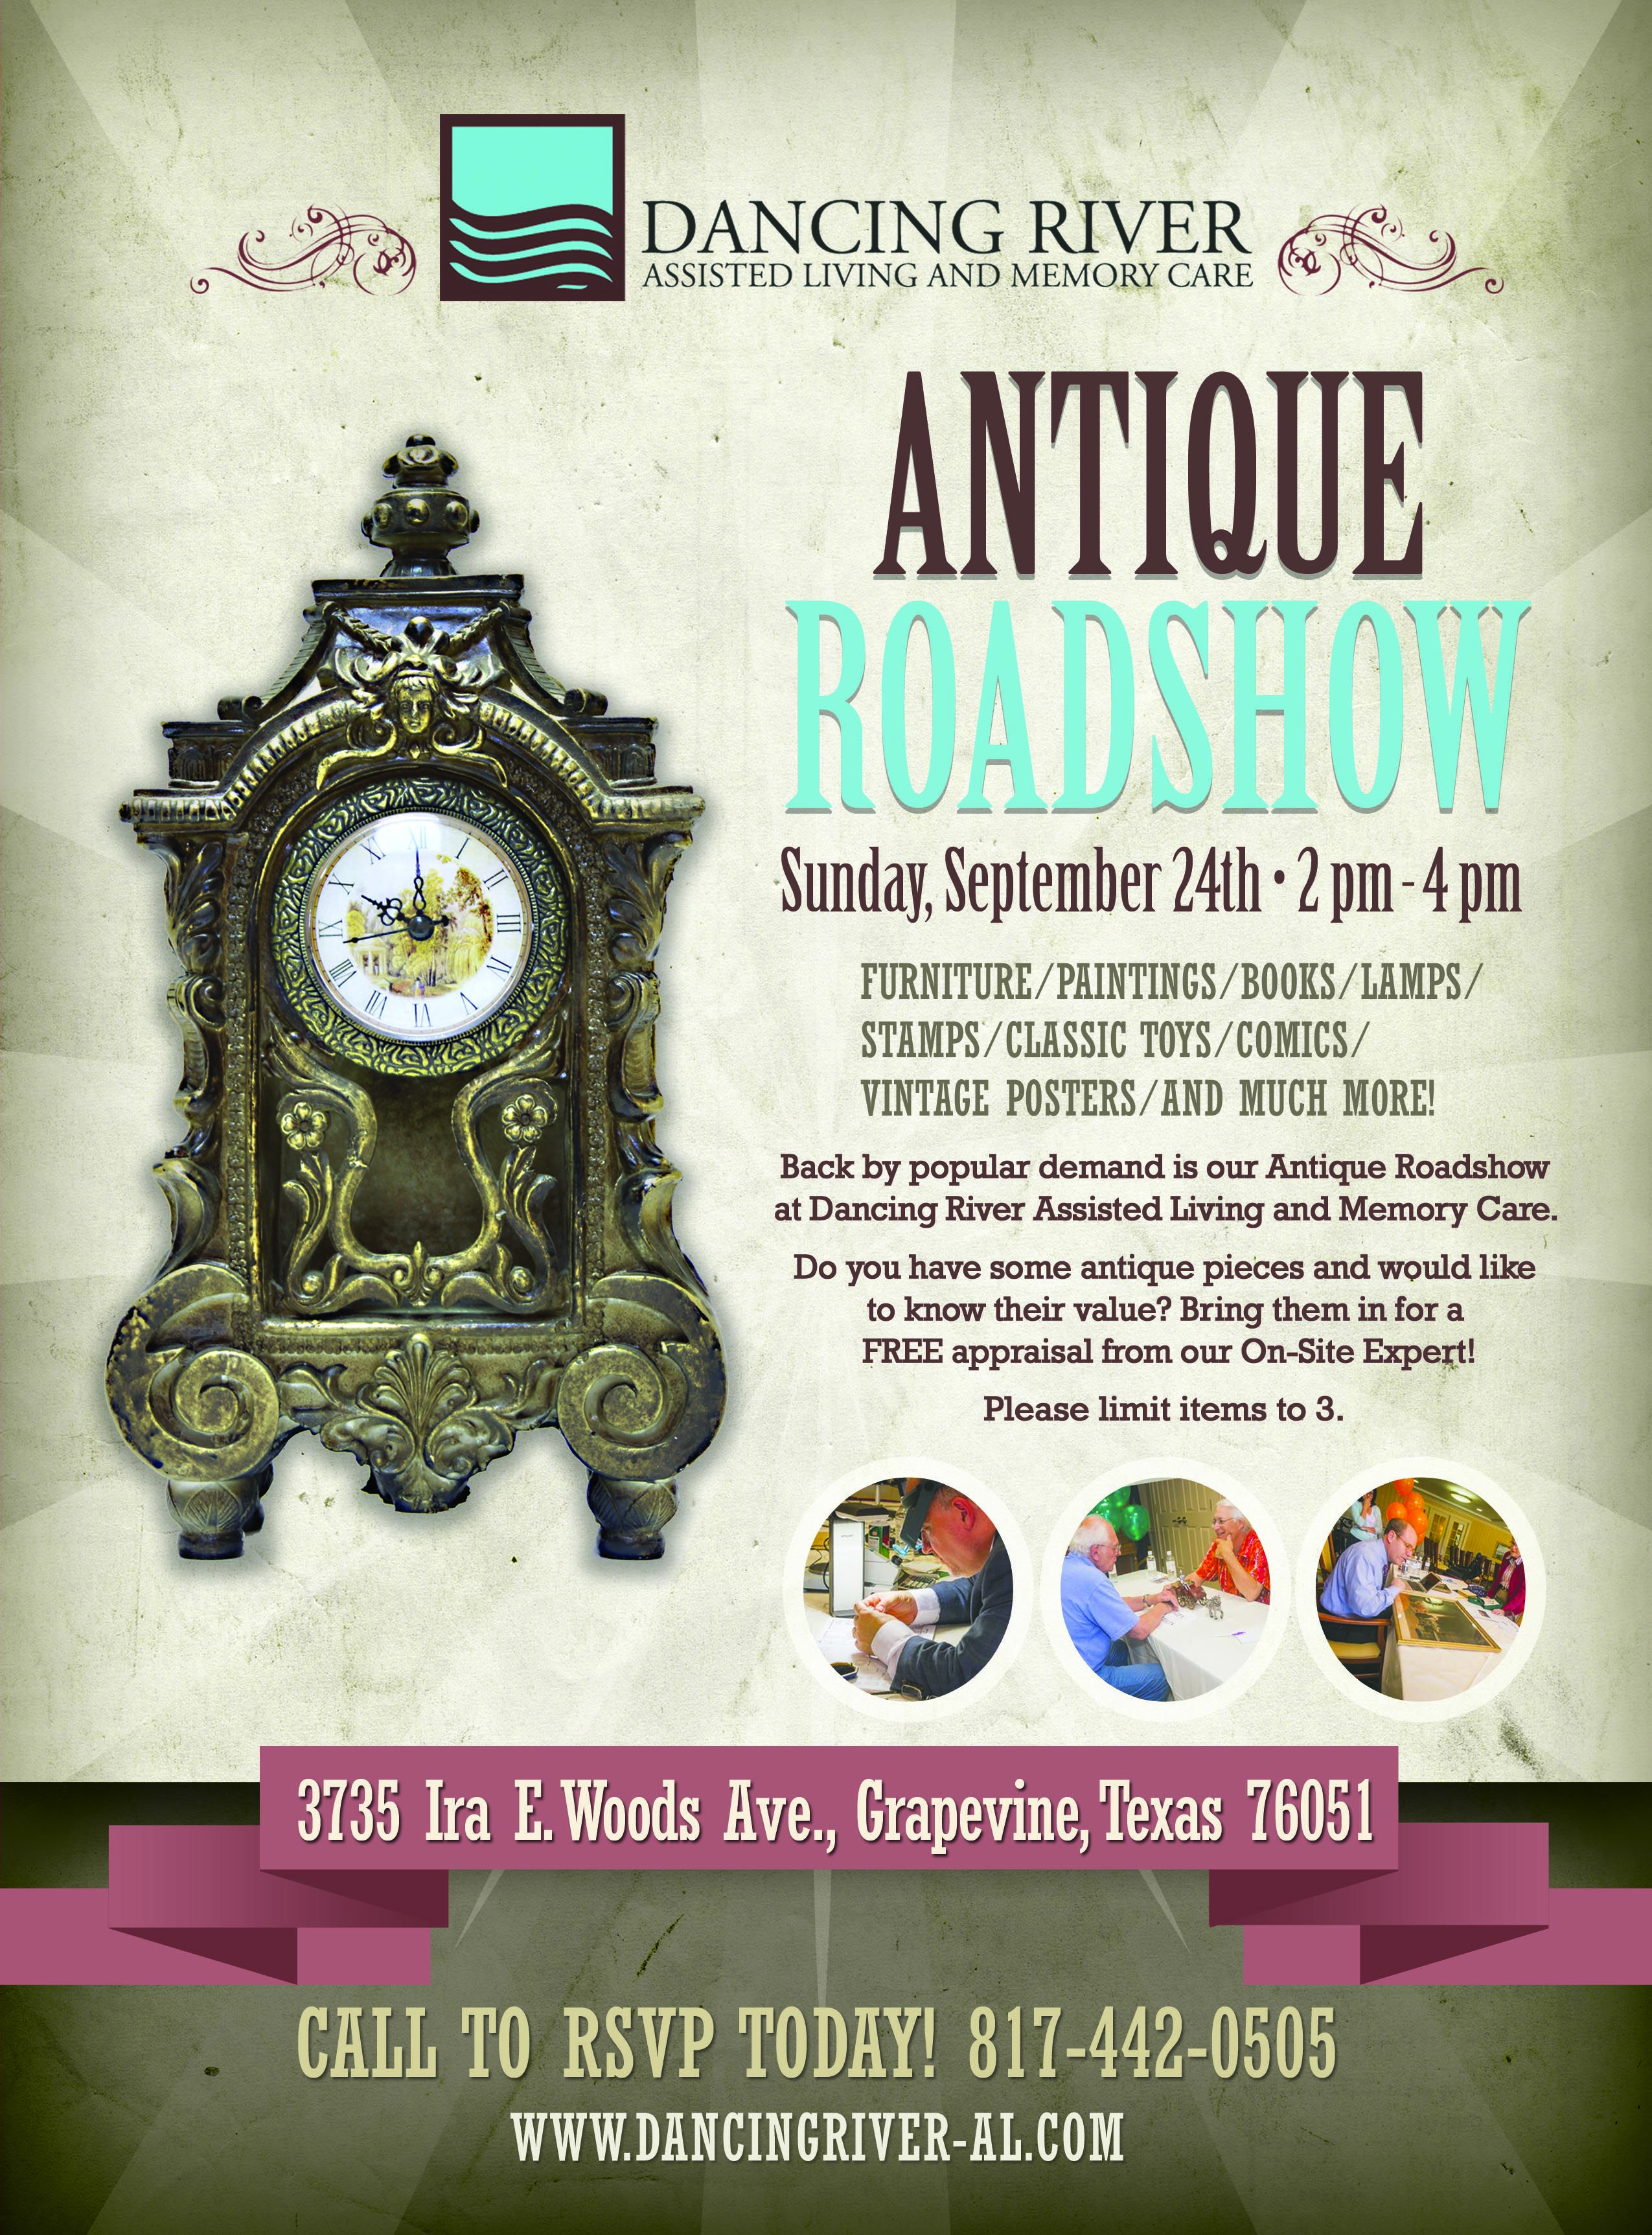 What Are You Bringing To The Antique Roadshow Roadshow Antiques Senior Living Book Lamp Assisted Living